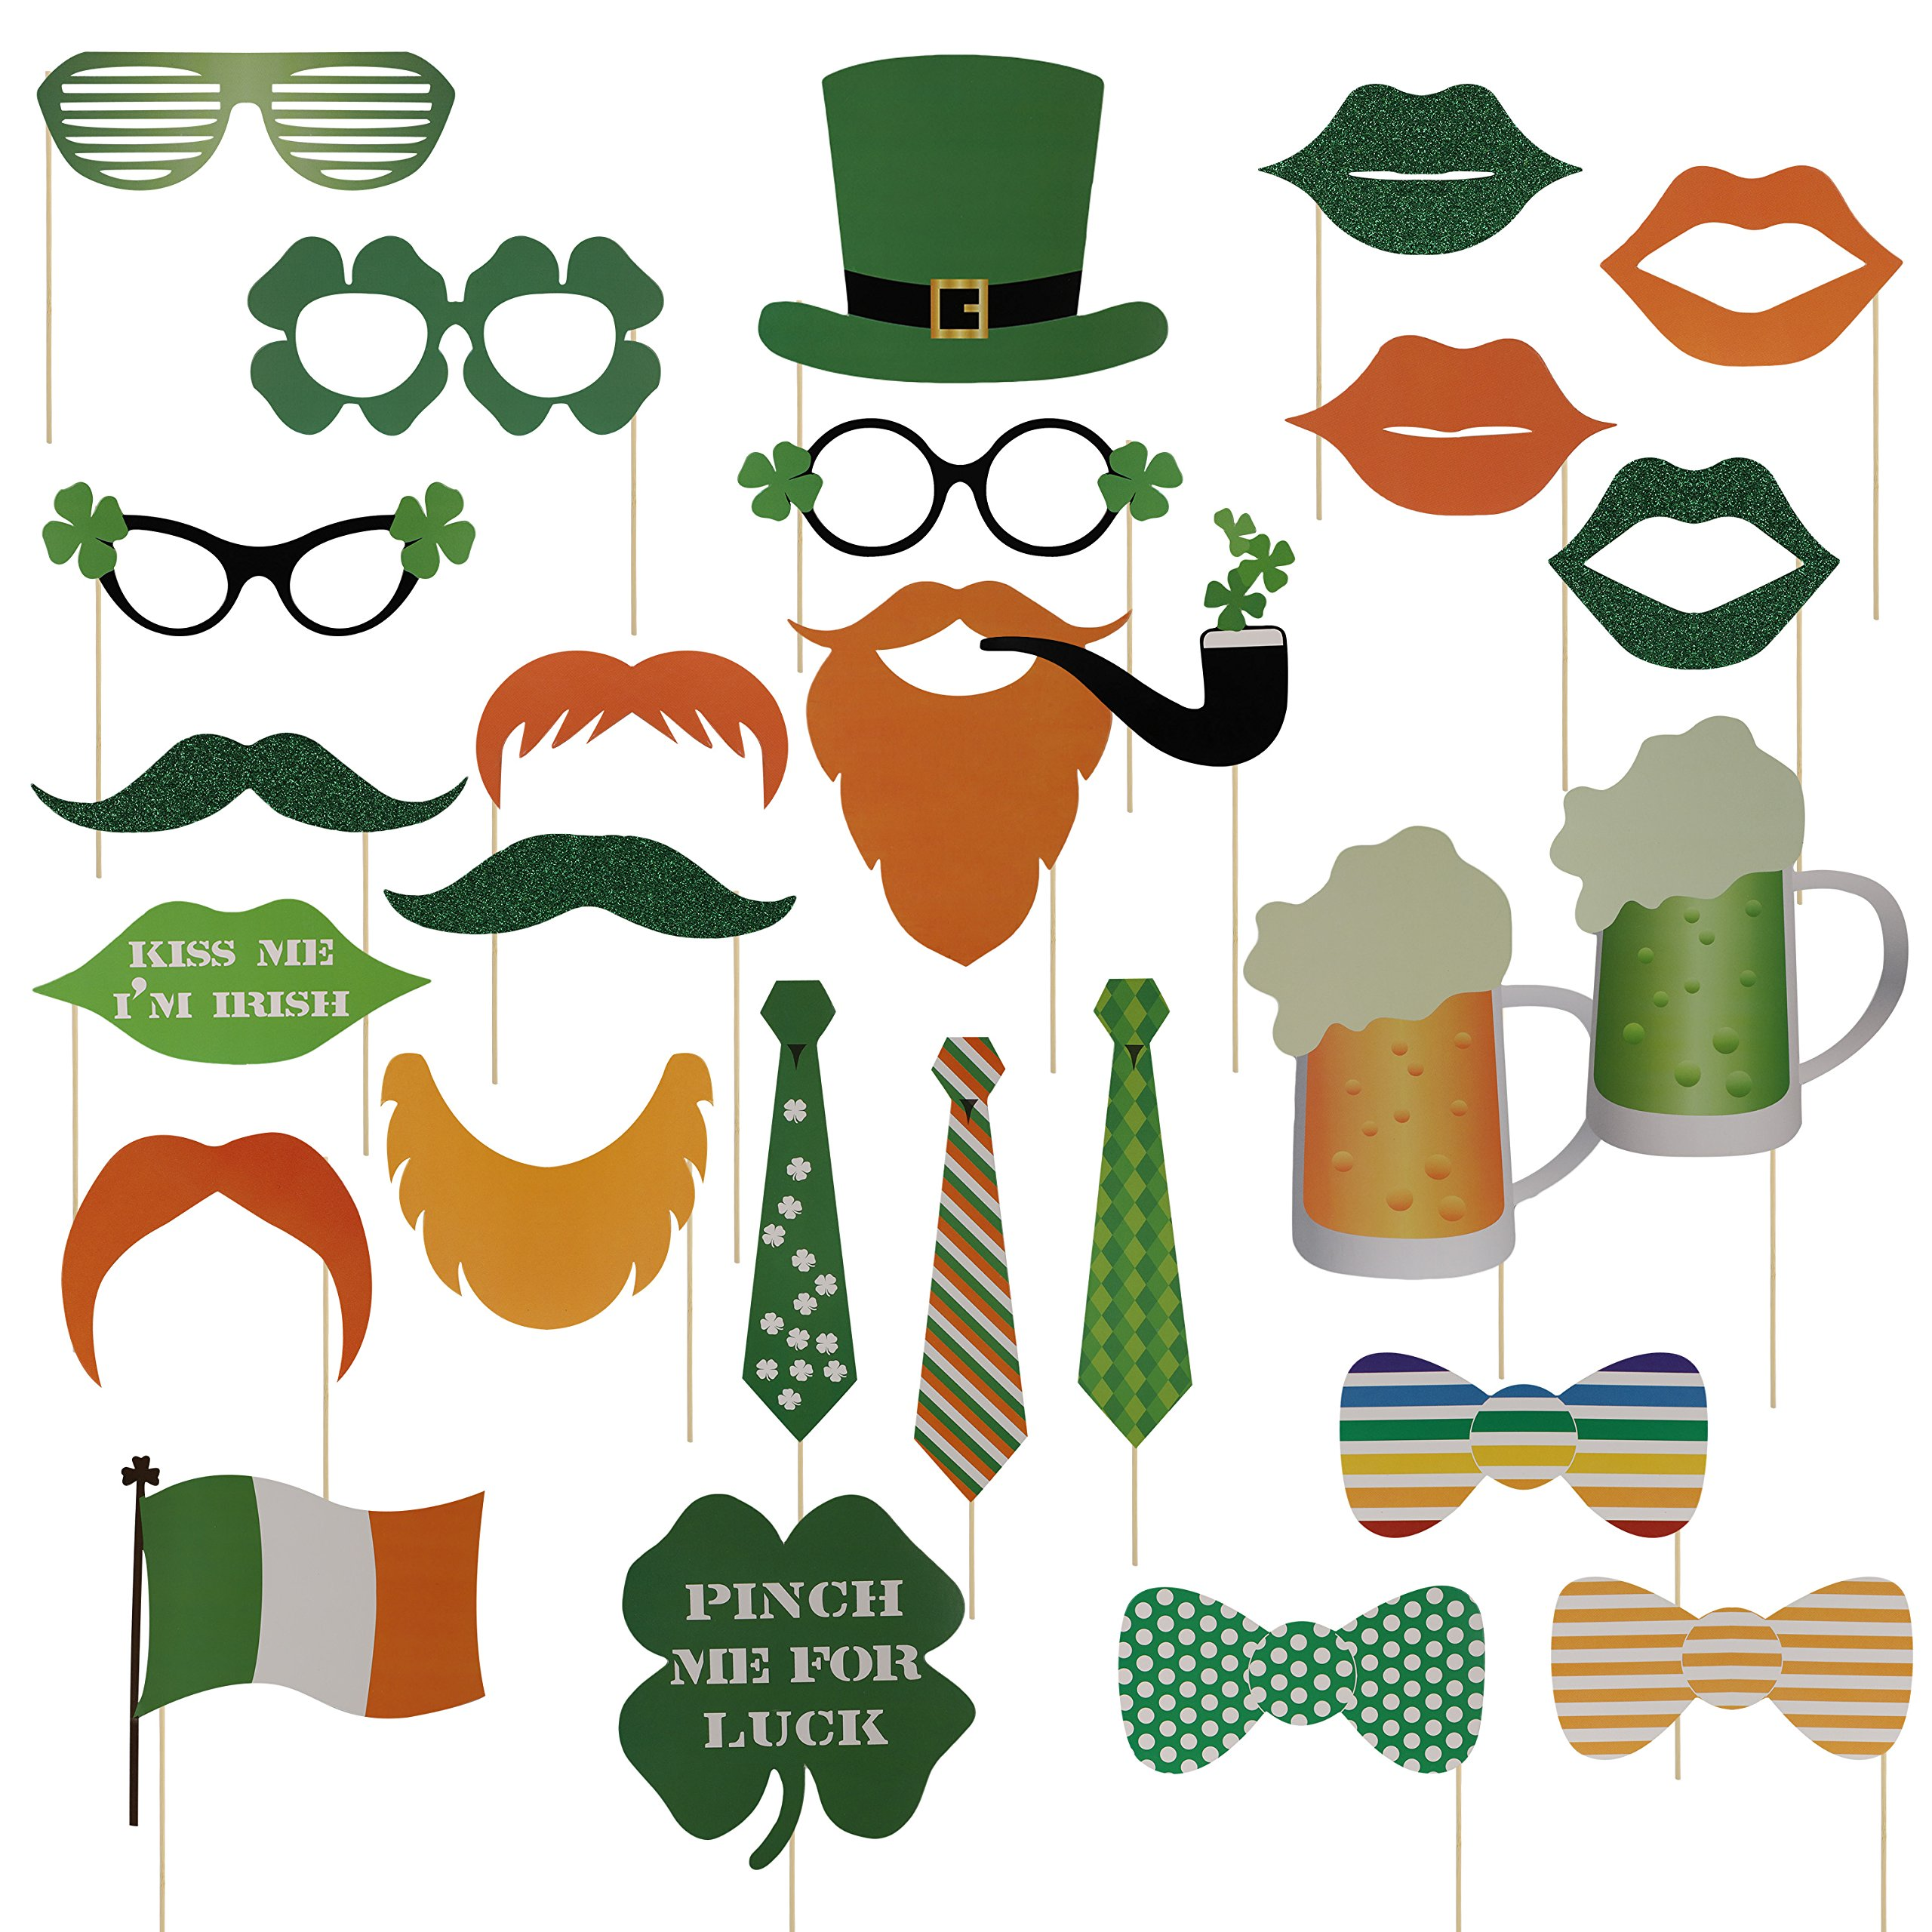 VIPITH Set of 27 Pieces St Patricks Day Photo Booth Props Kit DIY Photo Posing Prop Party Supplies with Funny Funny Mustache Hat Lips Eyeglasses Neck Ties Beers for St Patricks Day Themed Parties